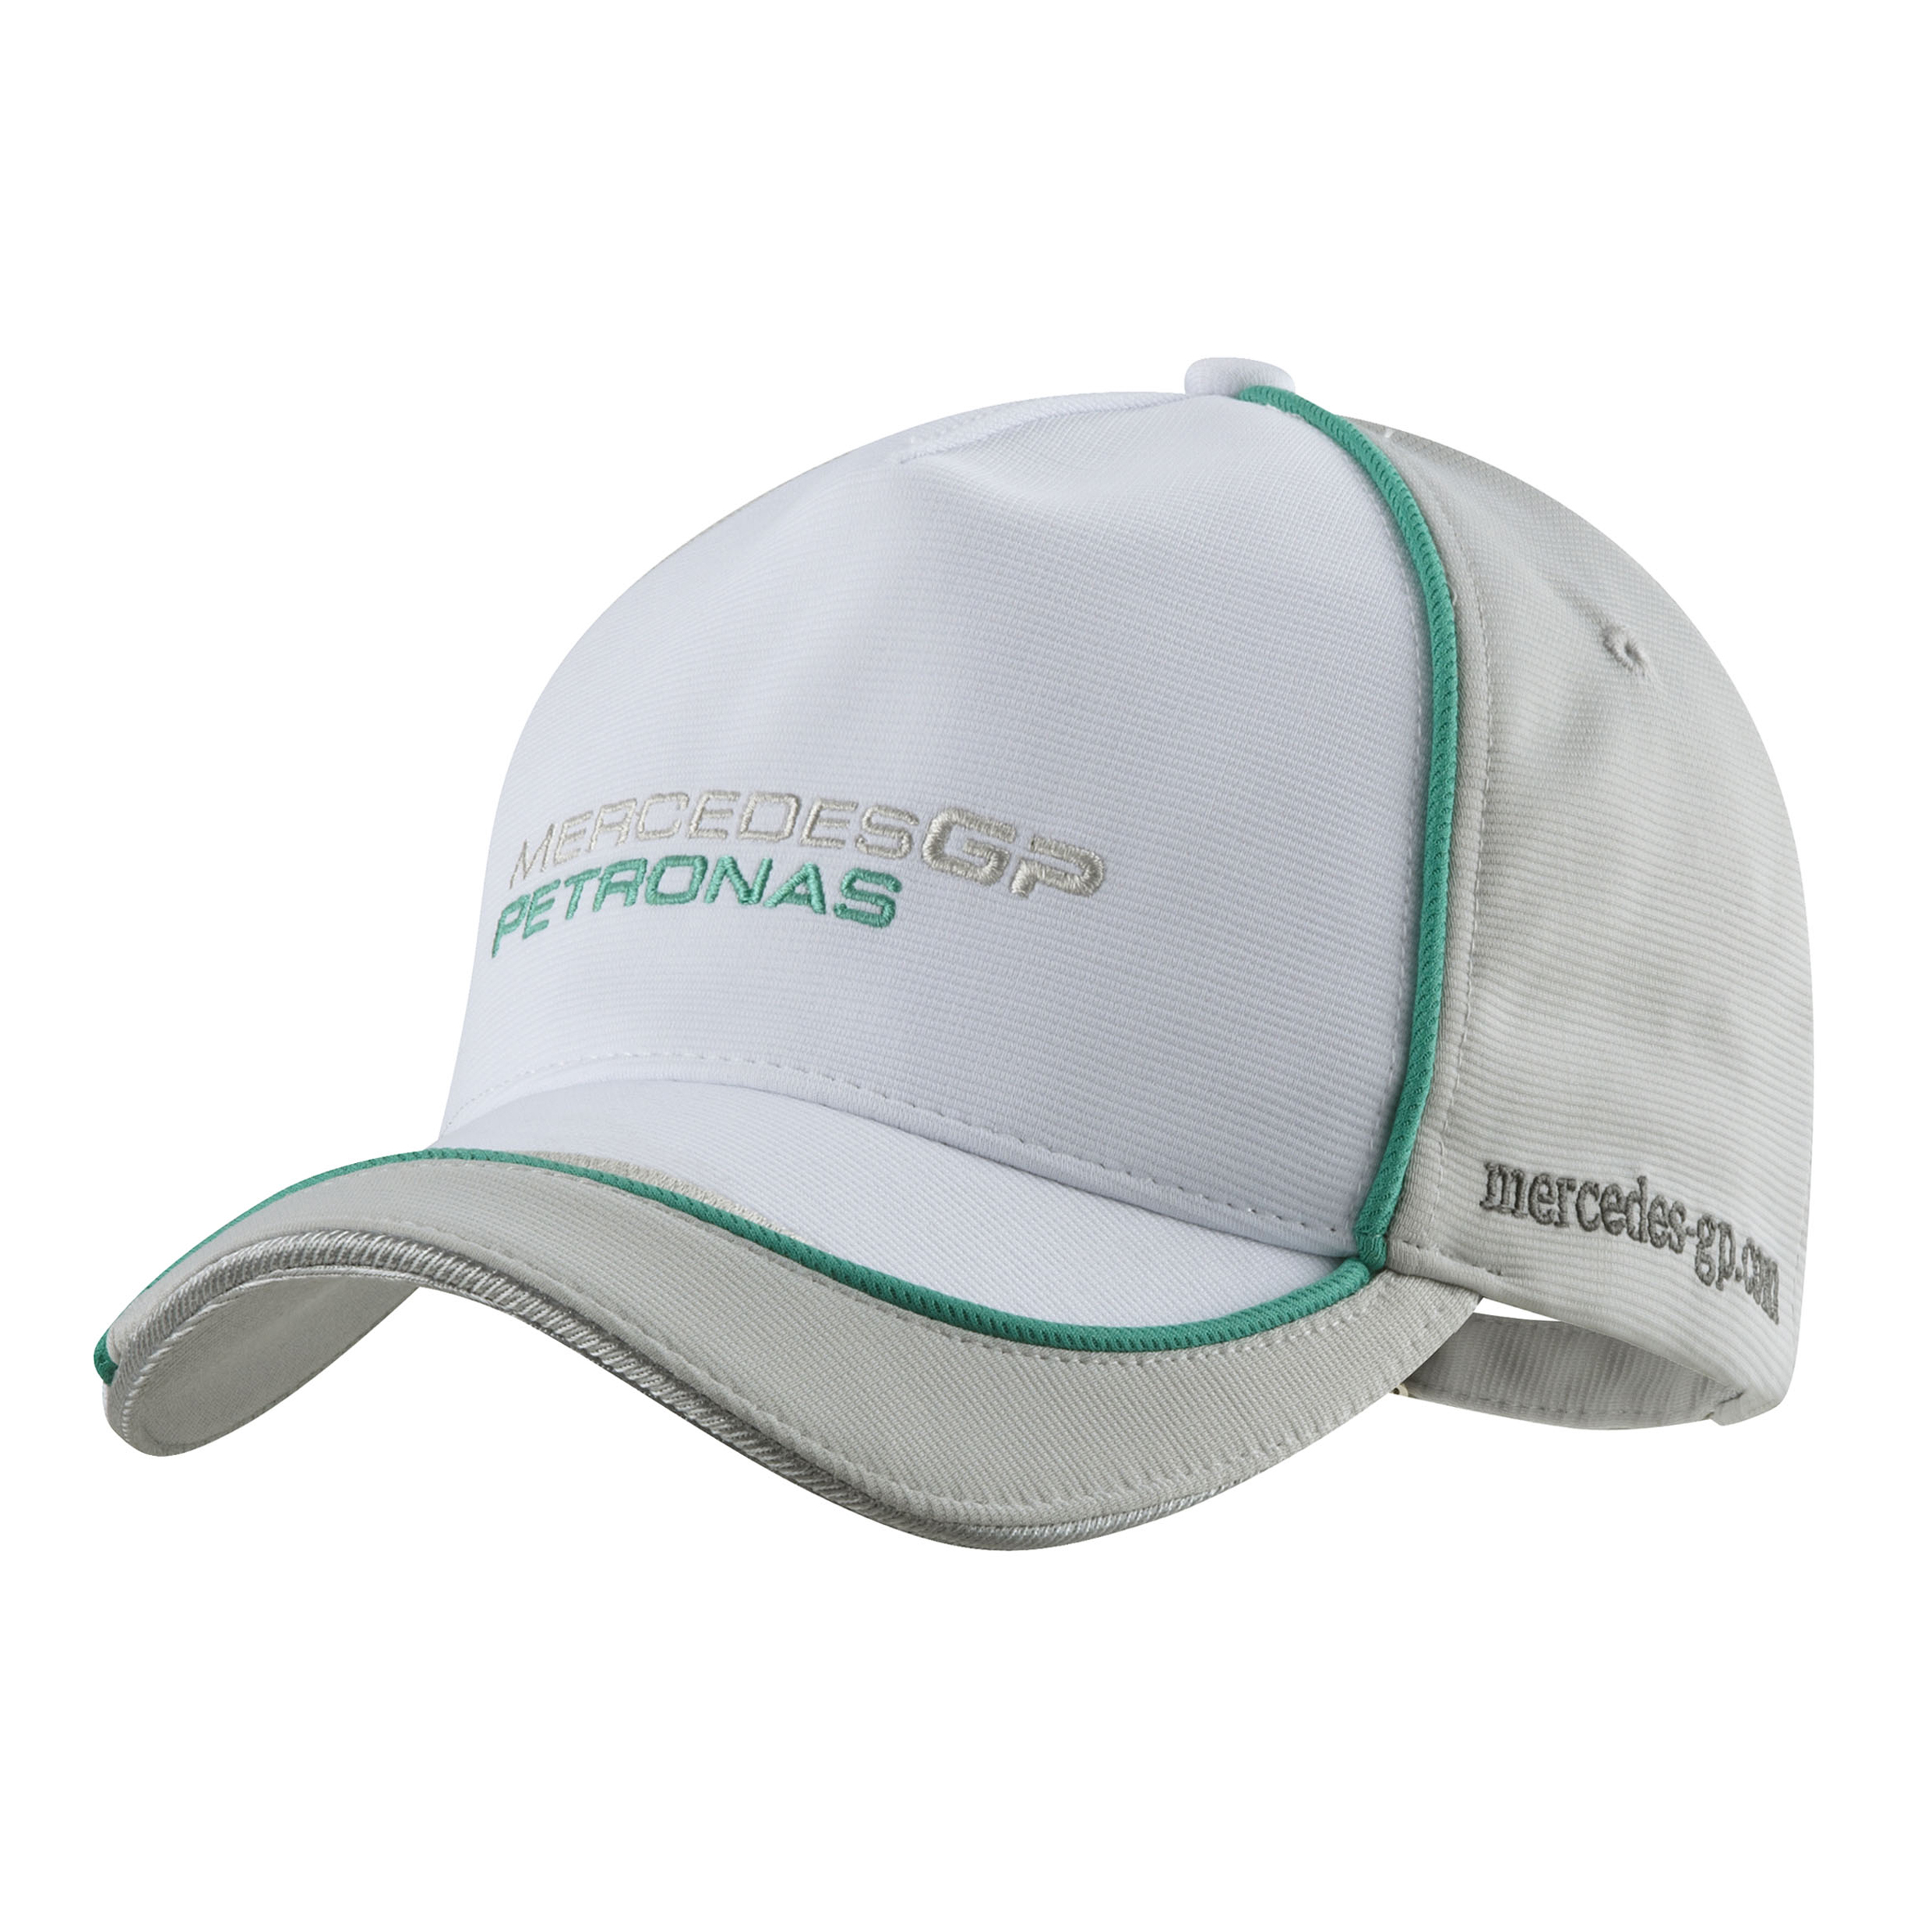 Mercedes GP Petronas Formula One Team 2011 Team Cap Junior